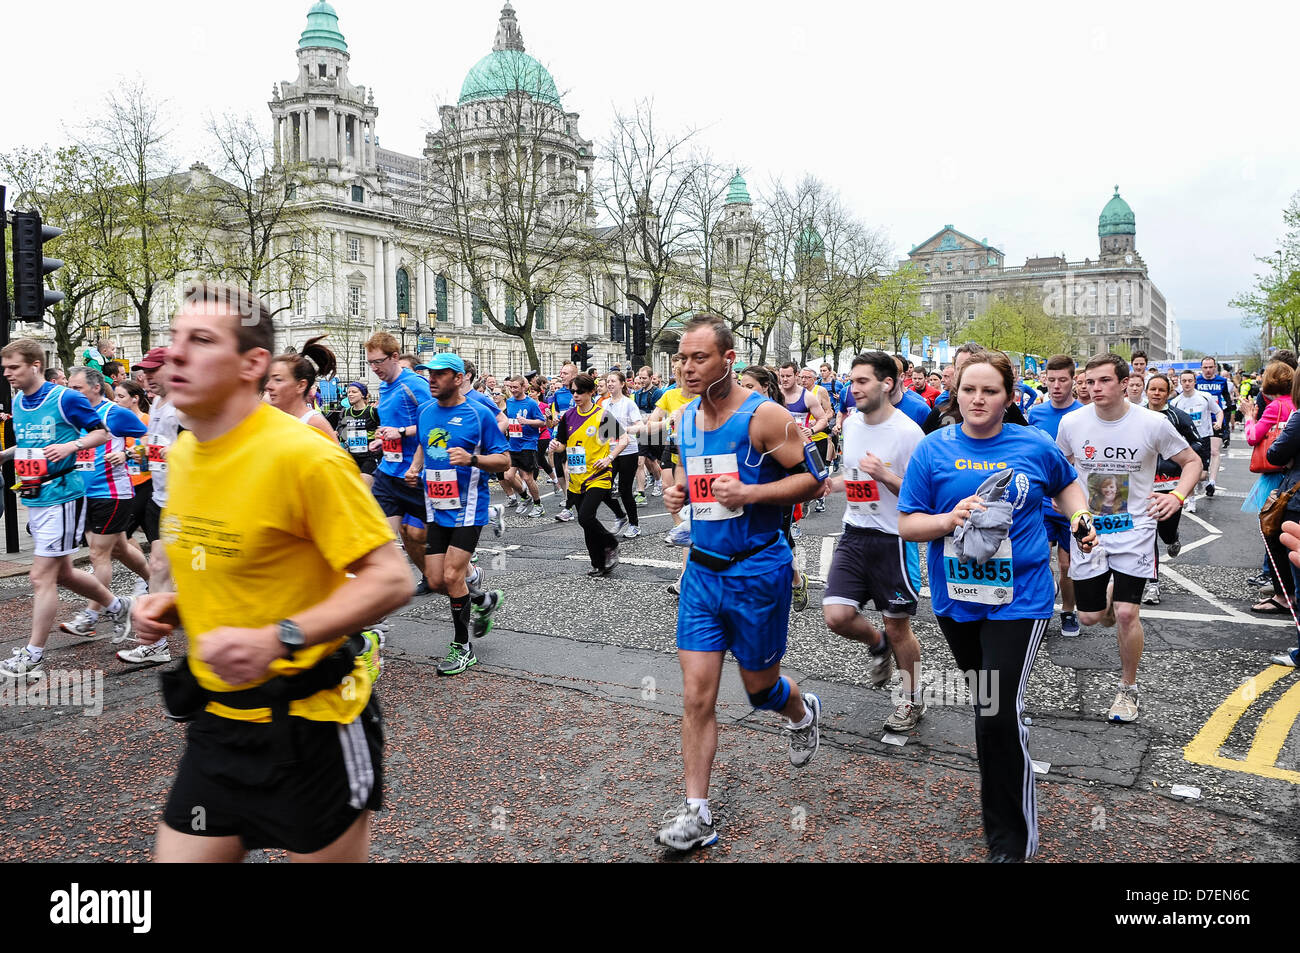 Belfast, Northern Ireland, UK. 6th May 2013. Thousands of runners compete in the 2013 Belfast City Marathon Credit: - Stock Image